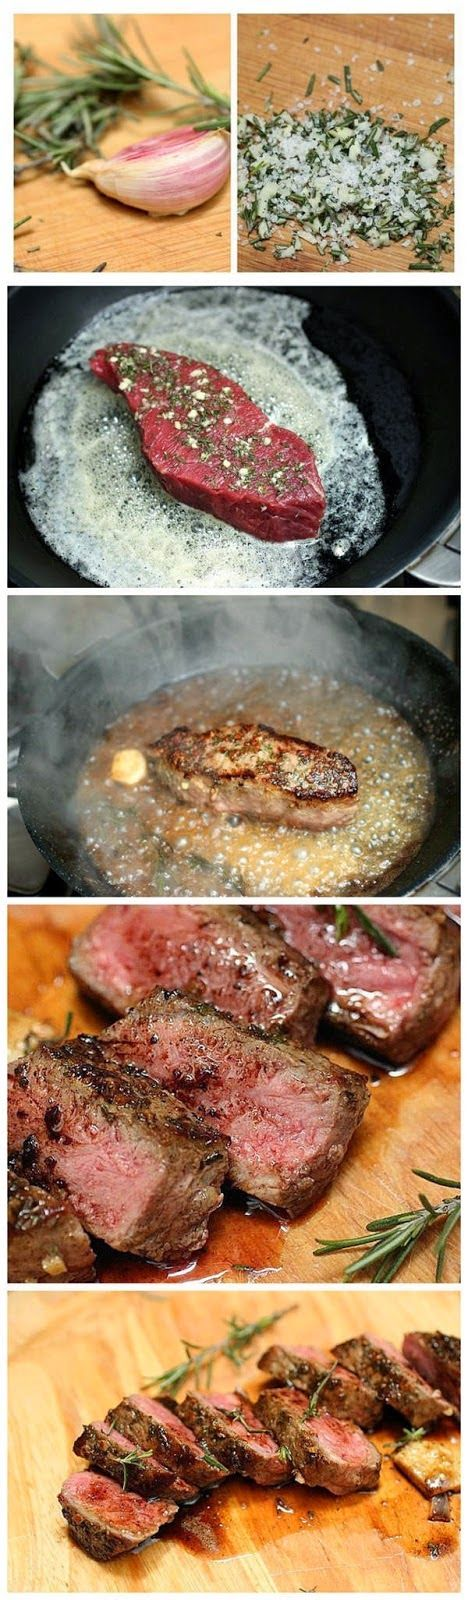 Chef Keso's Rosemary Garlic Butter Steaks